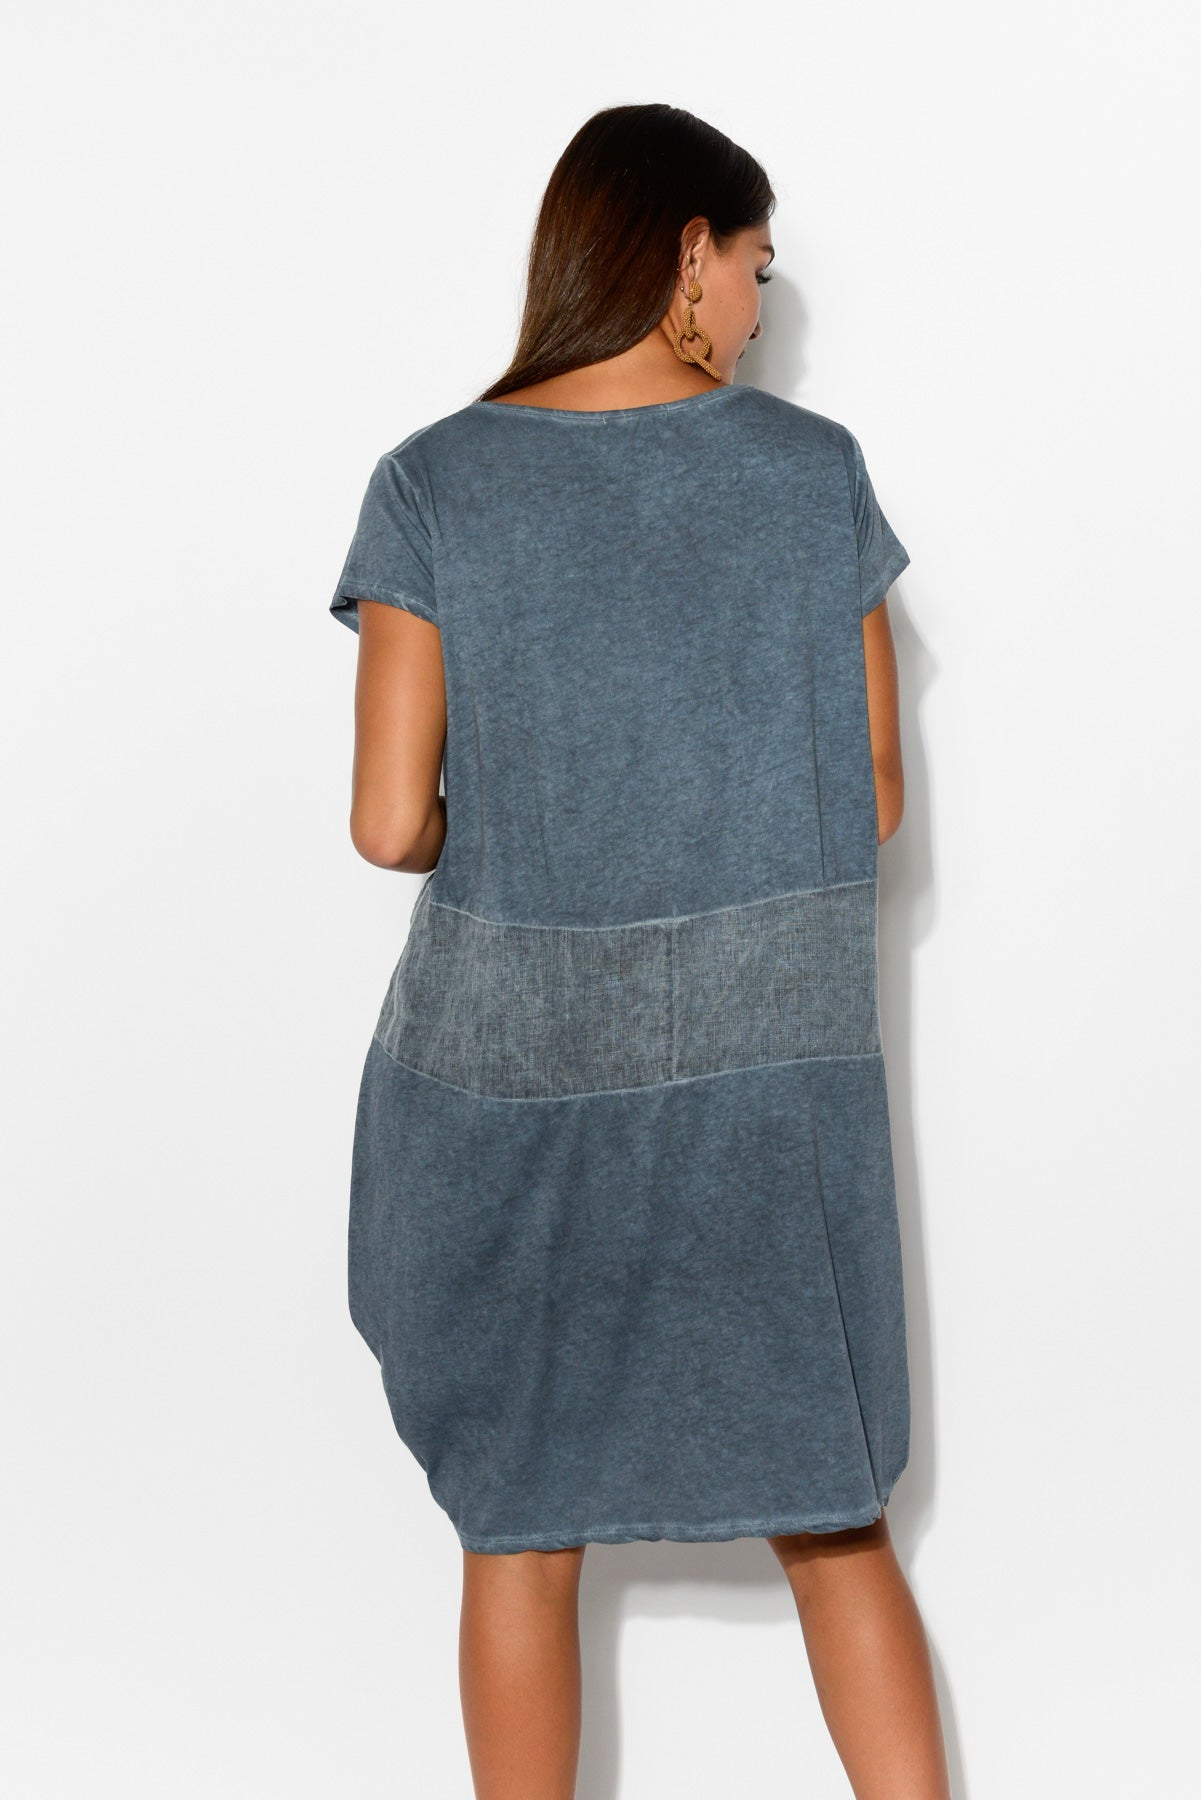 Blue Linen Panel Cotton Dress - Blue Bungalow